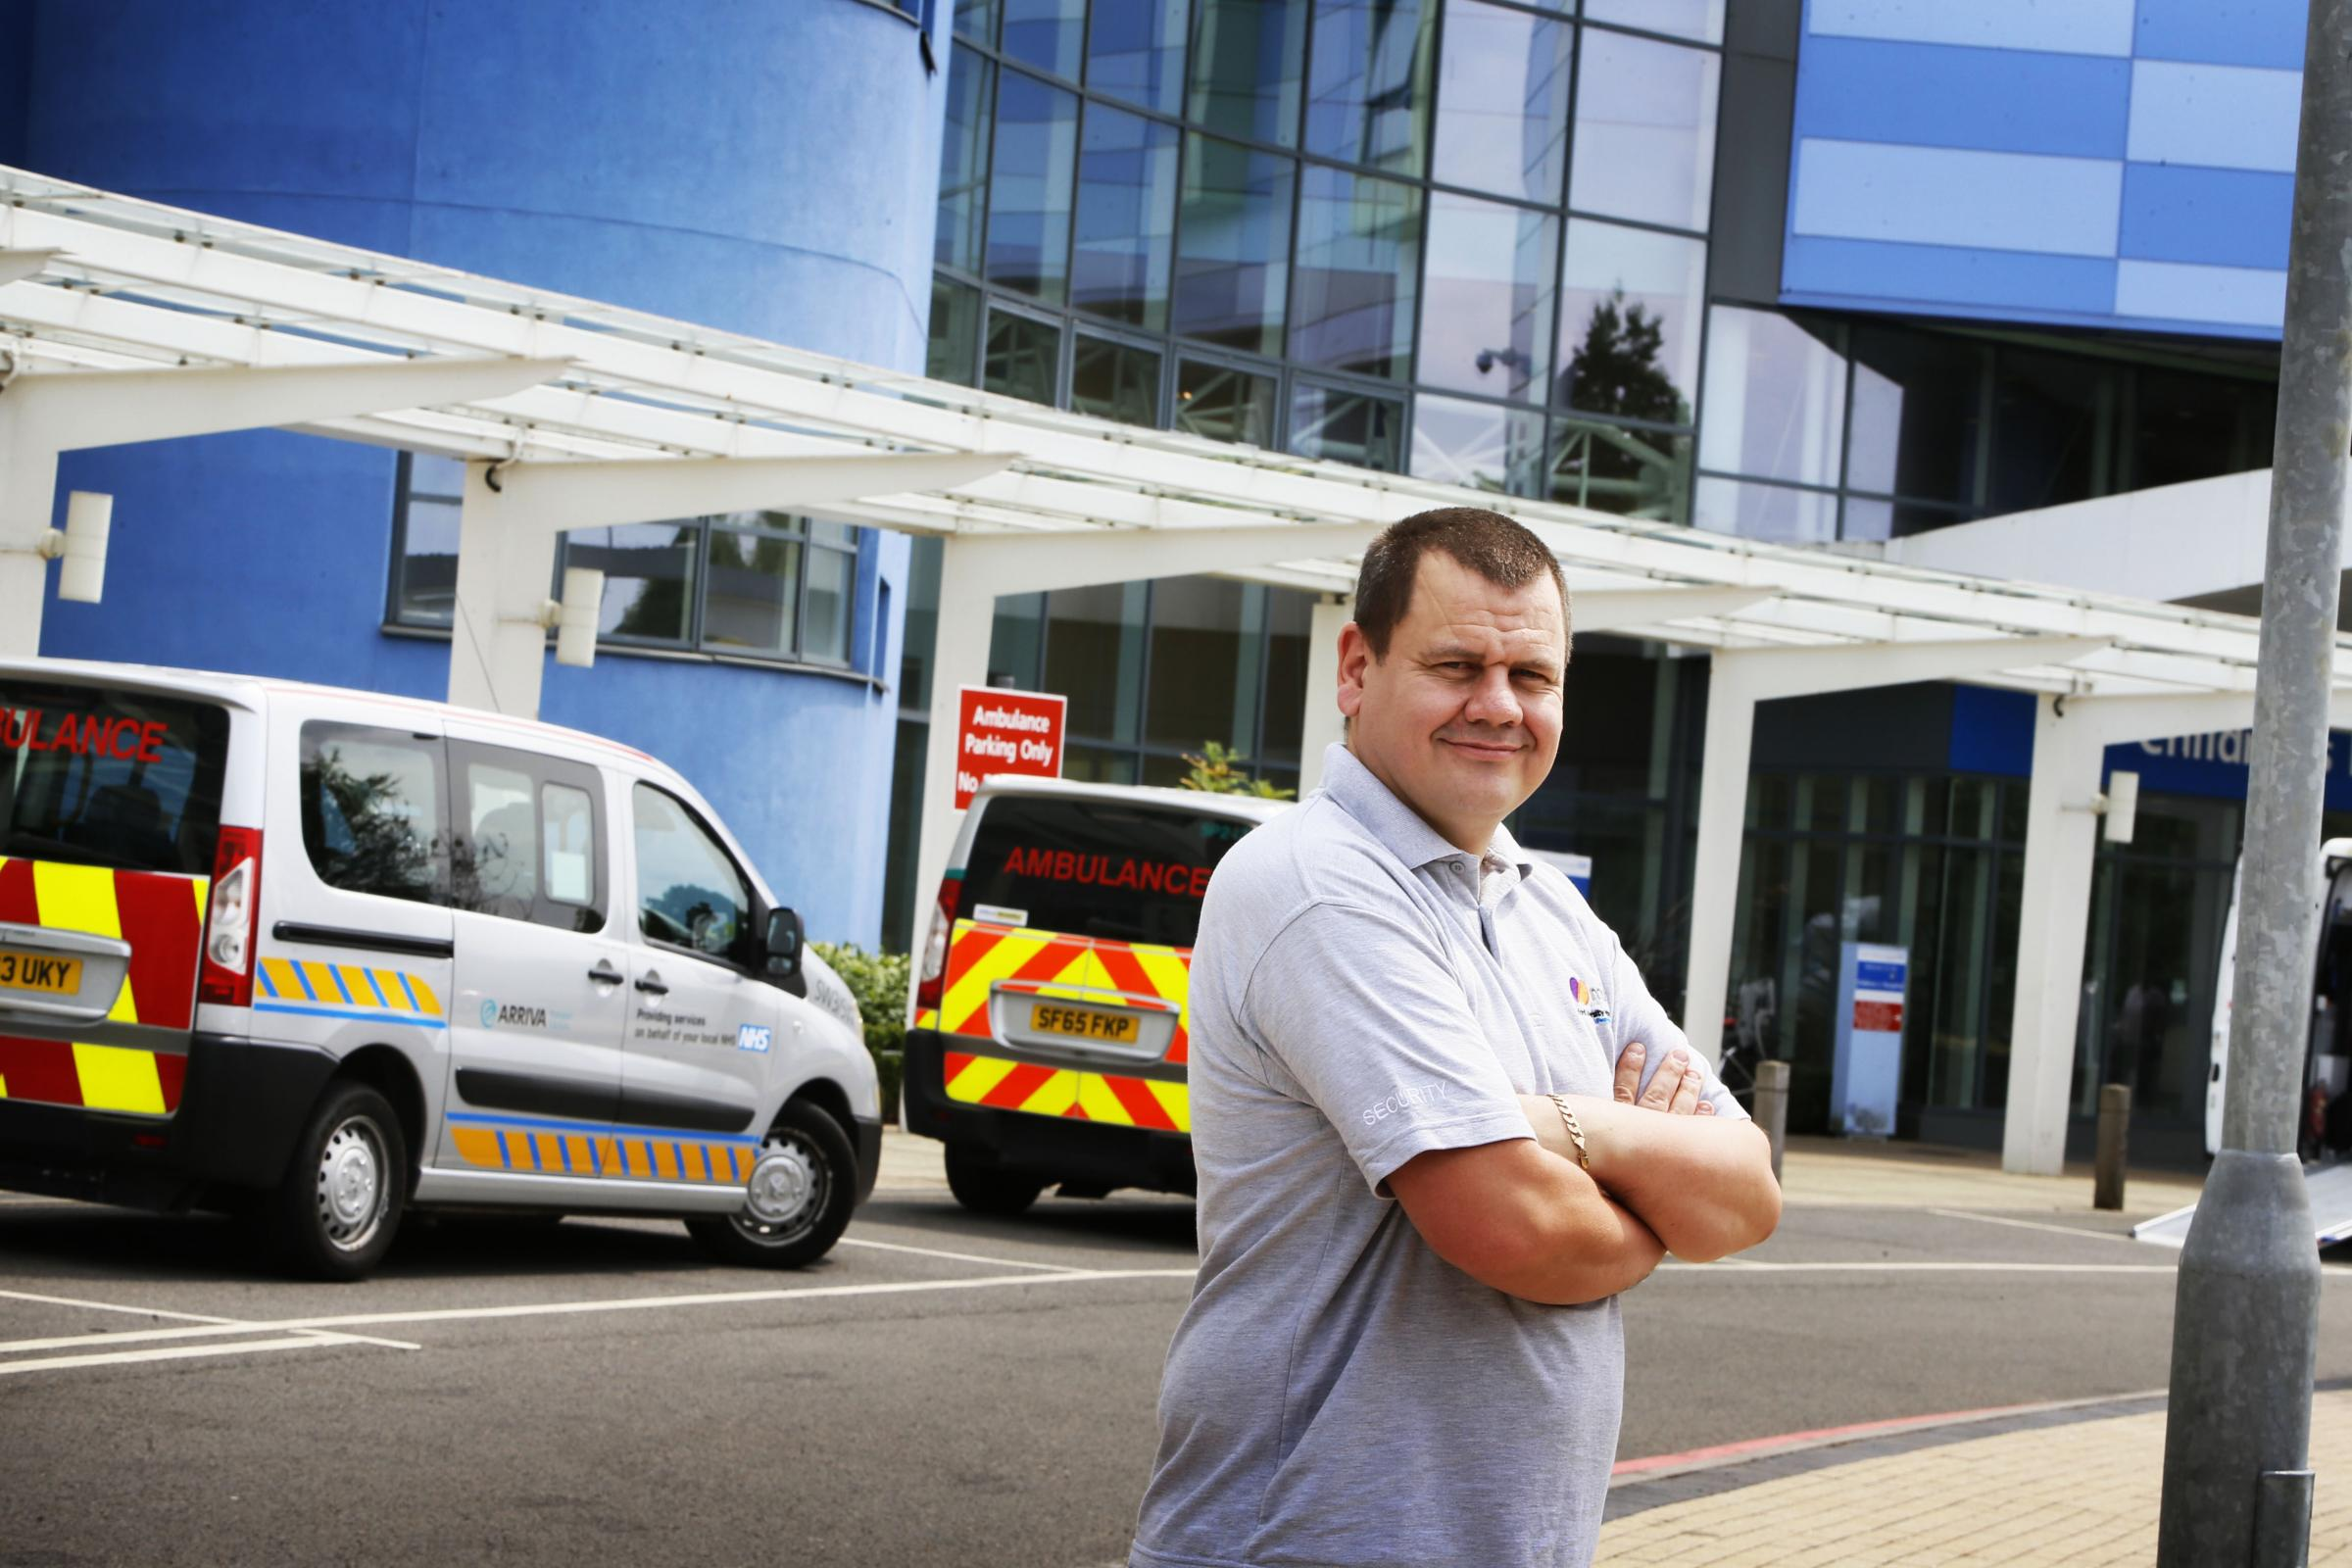 Brave security guard Leigh Shirley has been commended after tackling a patient who was seconds away from setting themself on fire .19.7.2018PICTURE BY ED NIX